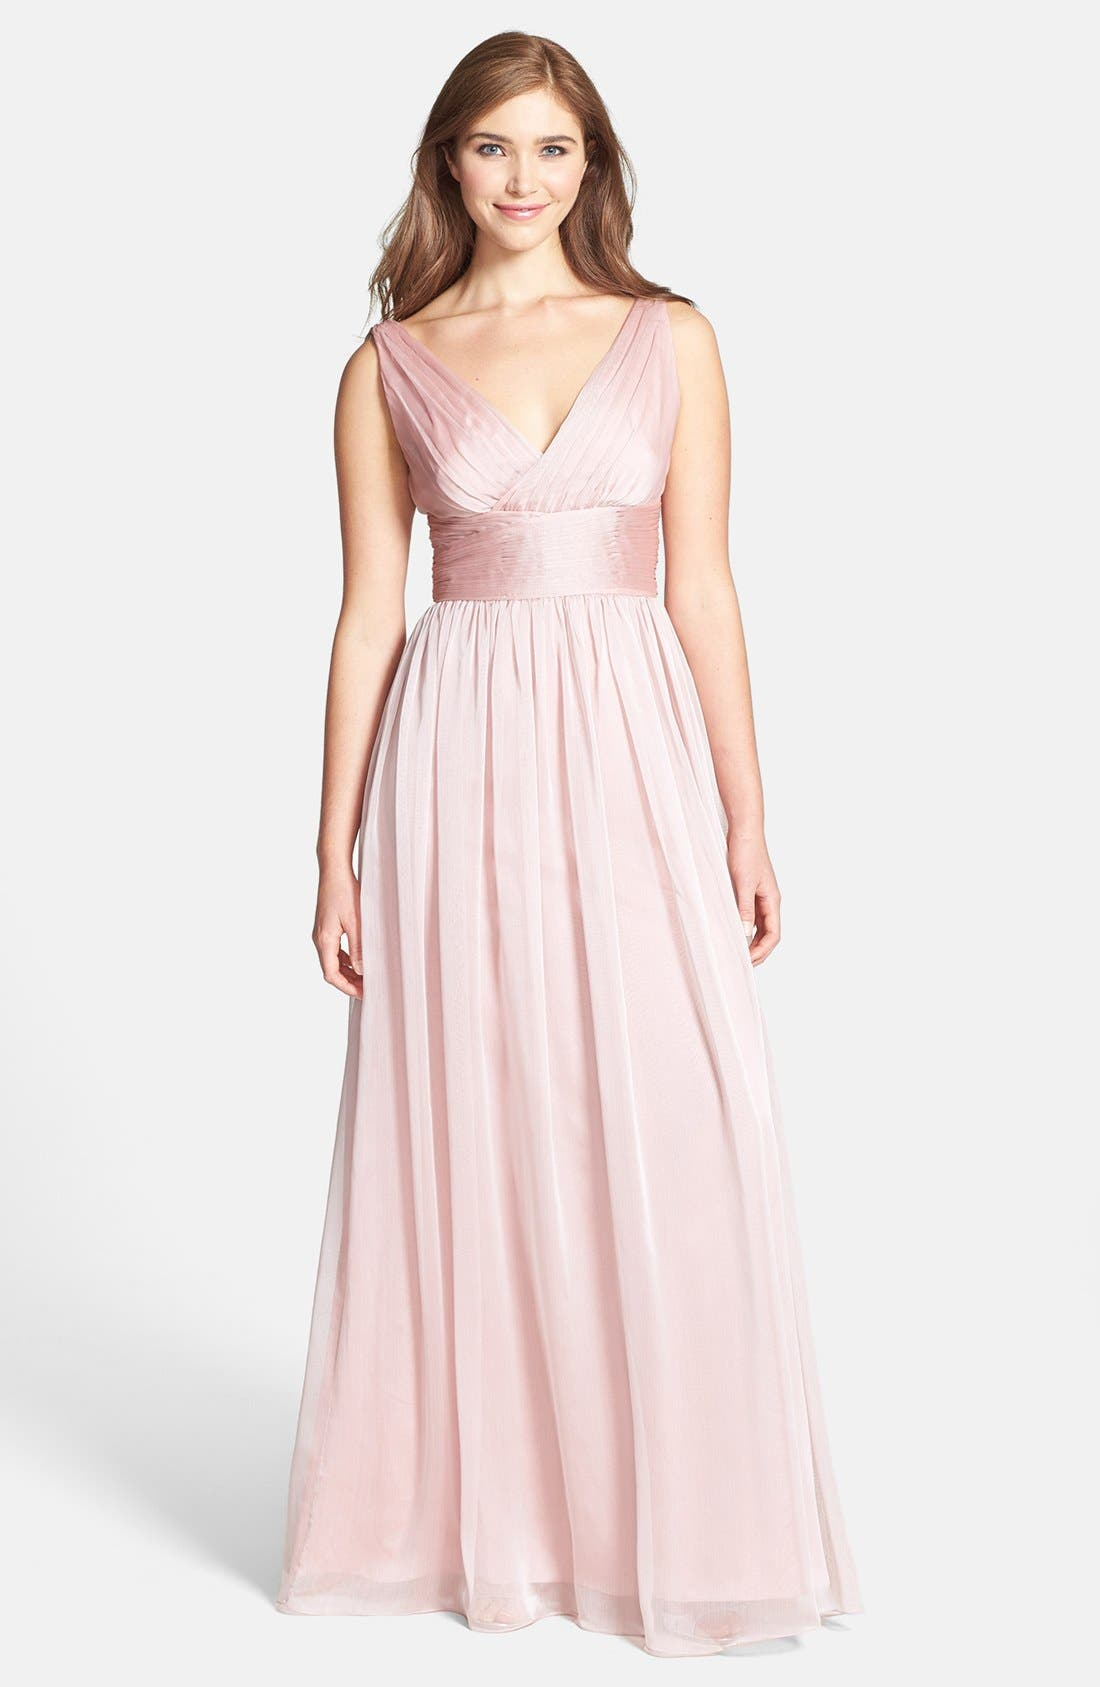 Alternate Image 1  - Monique Lhuillier Bridesmaids Sleeveless Ruched Chiffon Dress (Nordstrom Exclusive)